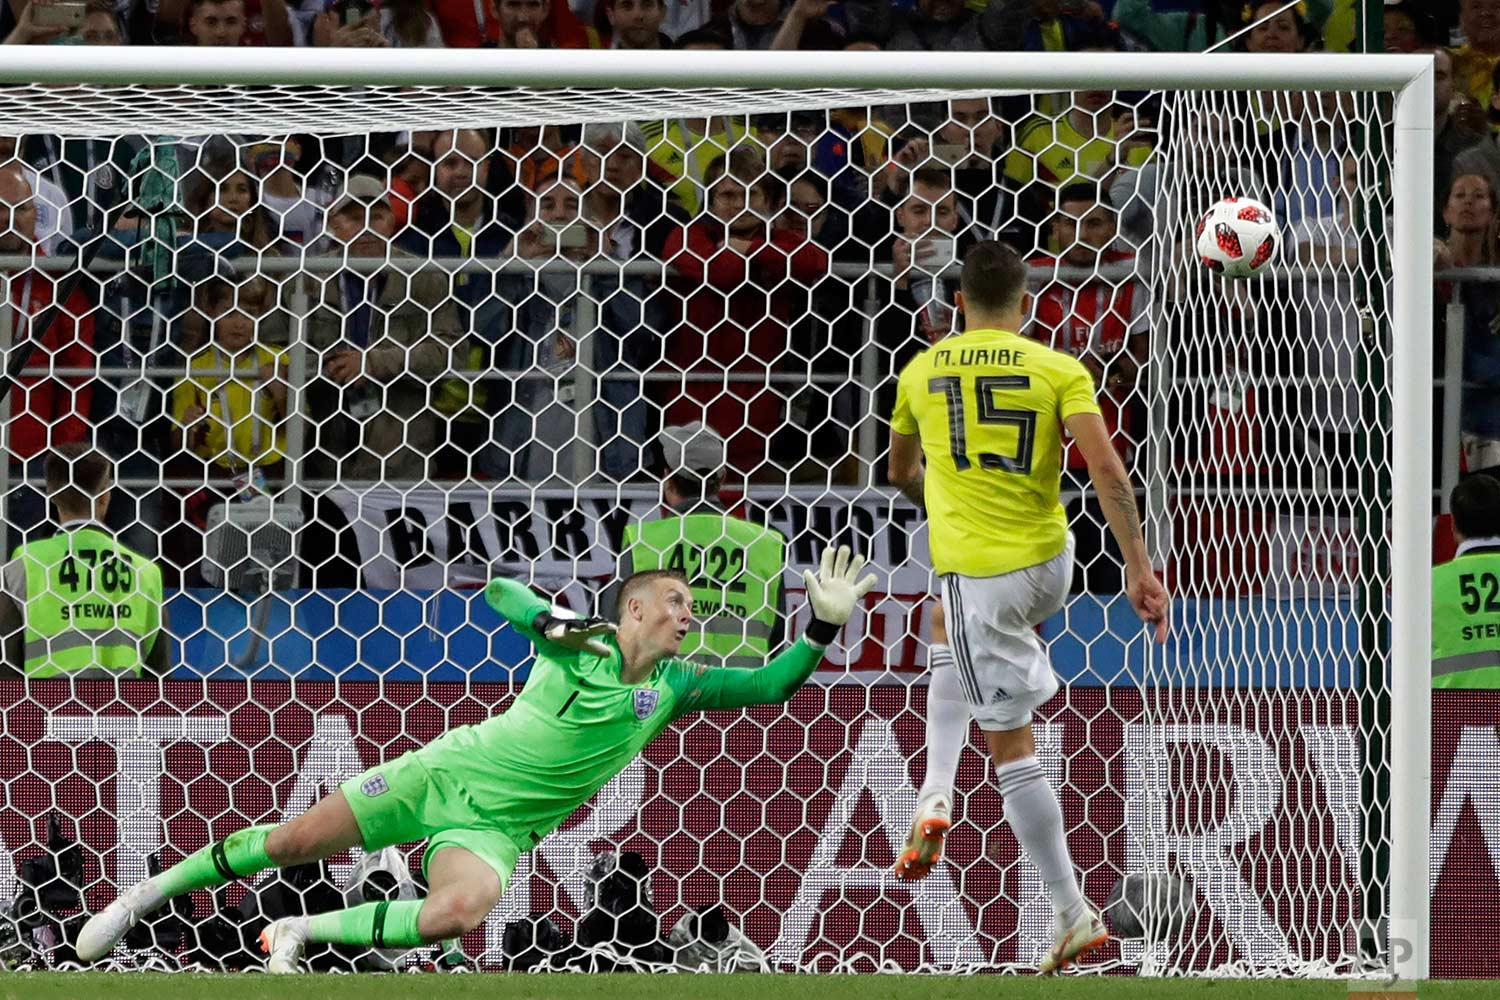 Colombia's Mateus Uribe fails to score on a penalty in the round of 16 match between Colombia and England at the 2018 soccer World Cup in the Spartak Stadium, in Moscow, Russia, Tuesday, July 3, 2018. England eliminates Colombia 4-3 on penalties after the game ends 1-1. (AP Photo/Matthias Schrader)